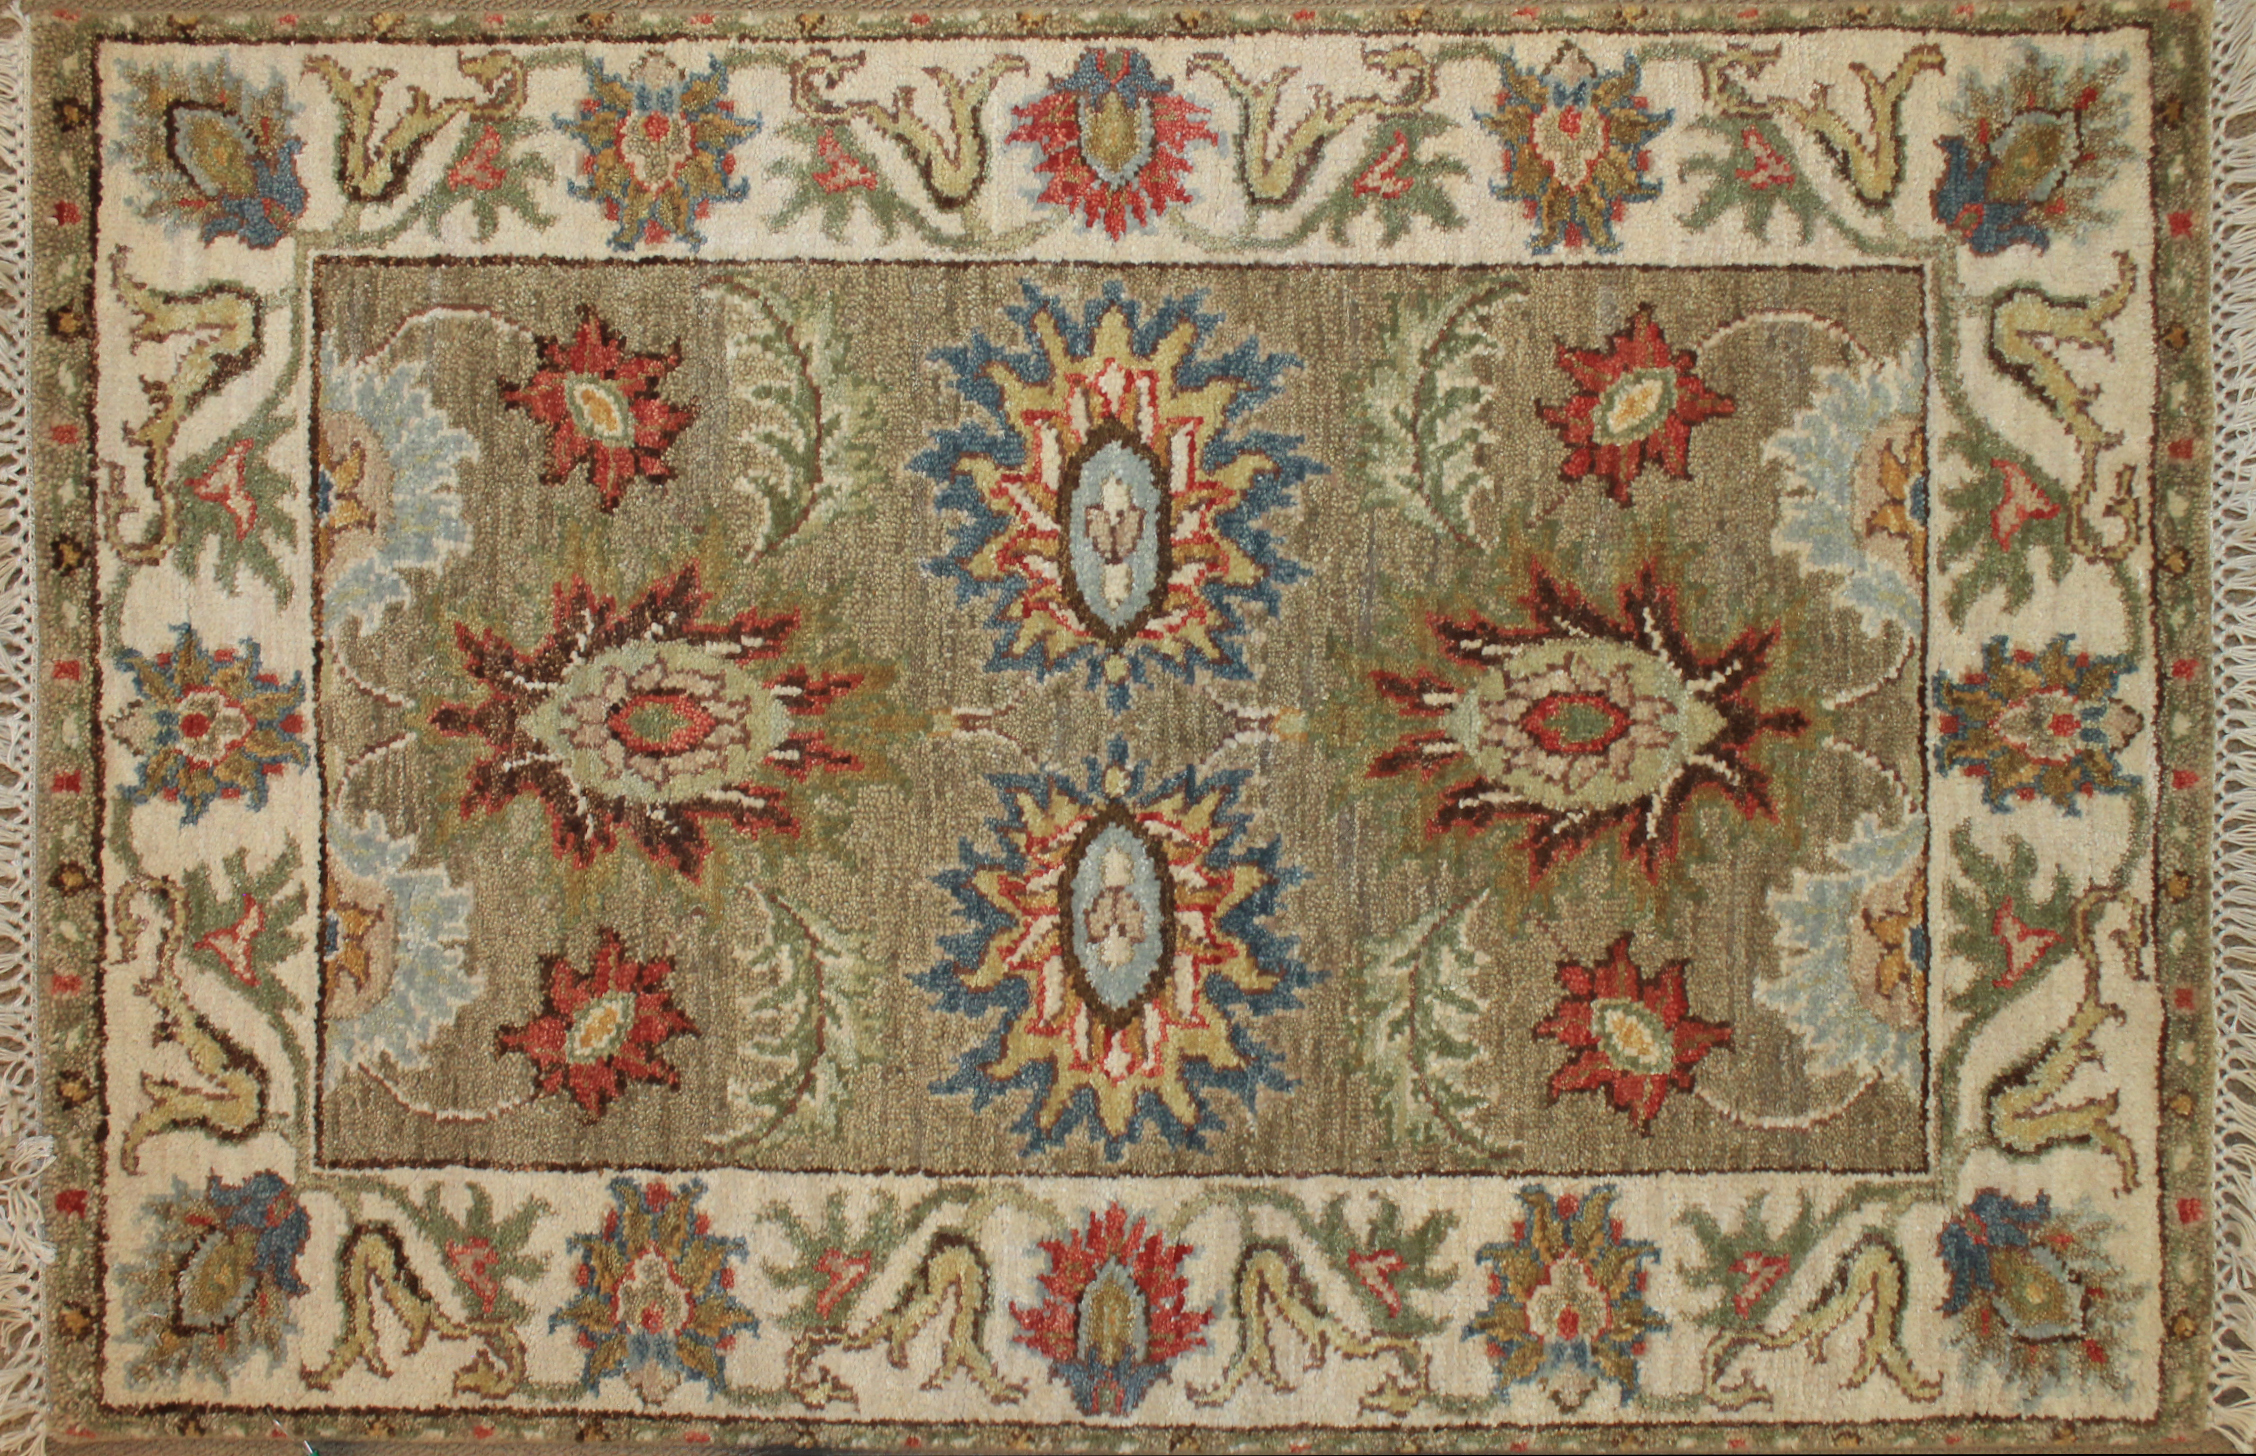 2X3 Traditional Hand Knotted Wool Area Rug - MR024797